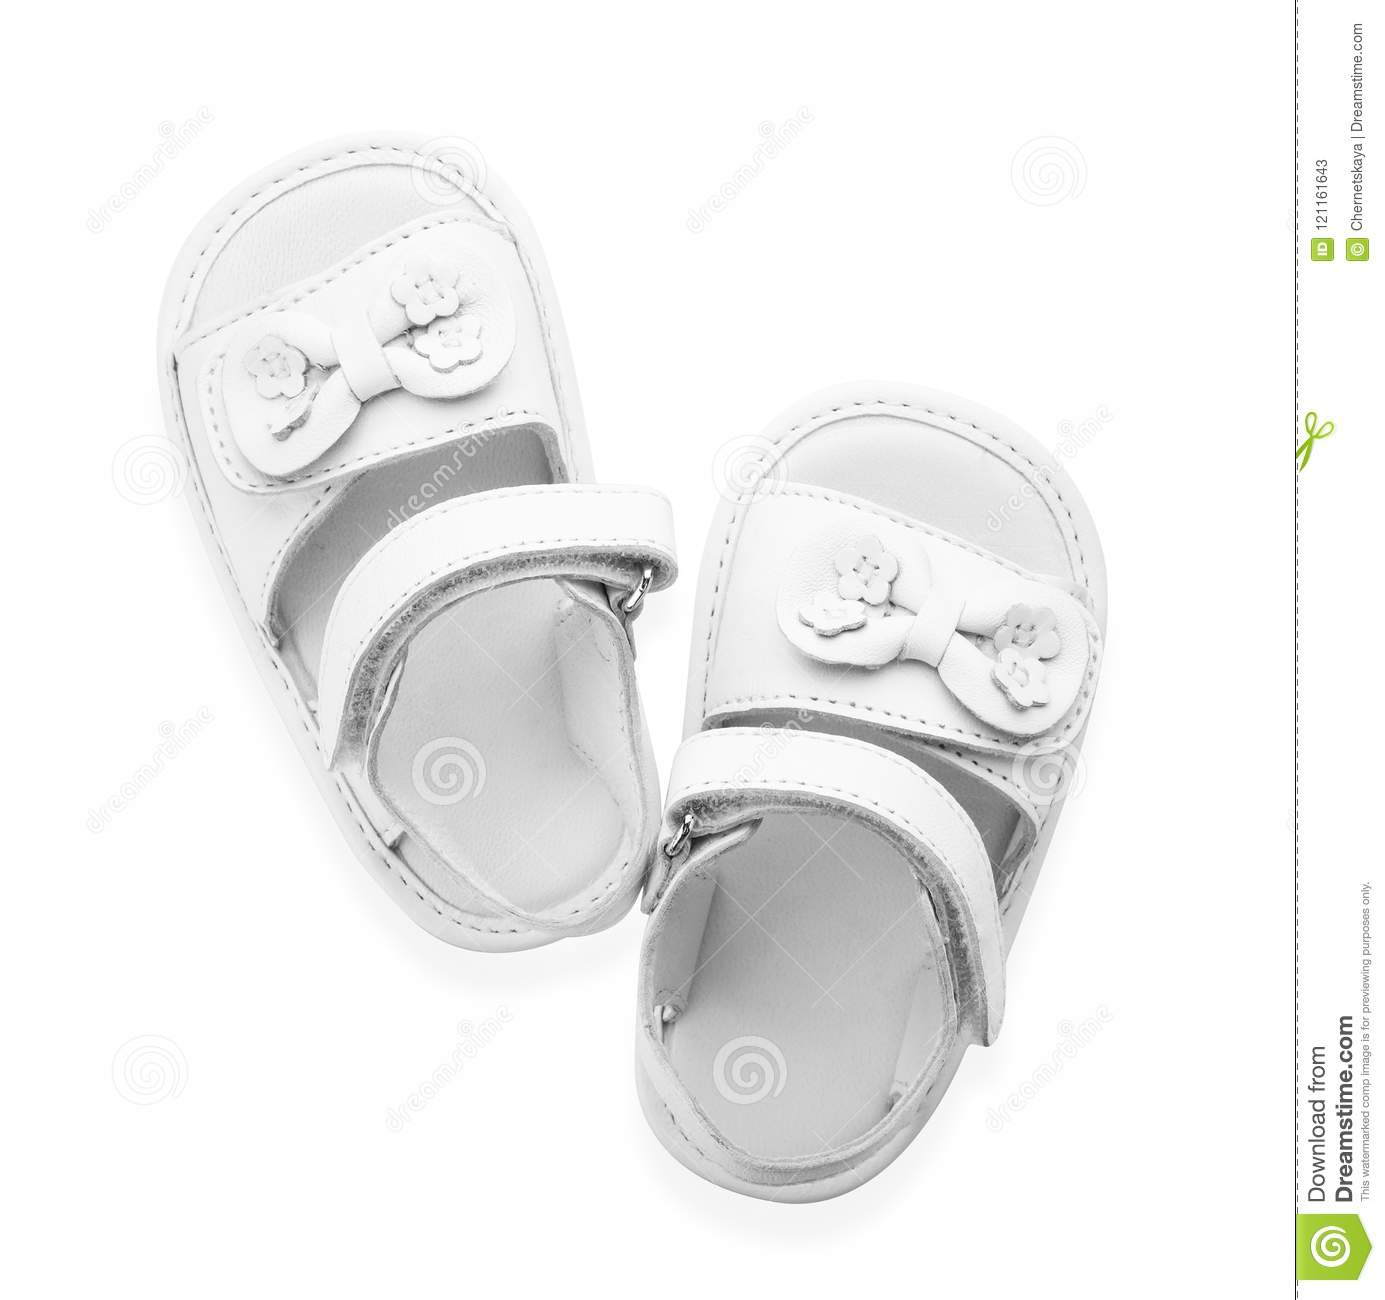 12ffa4c6644e9 Pair Of Cute Baby Sandals Decorated With Bows Stock Image - Image of ...